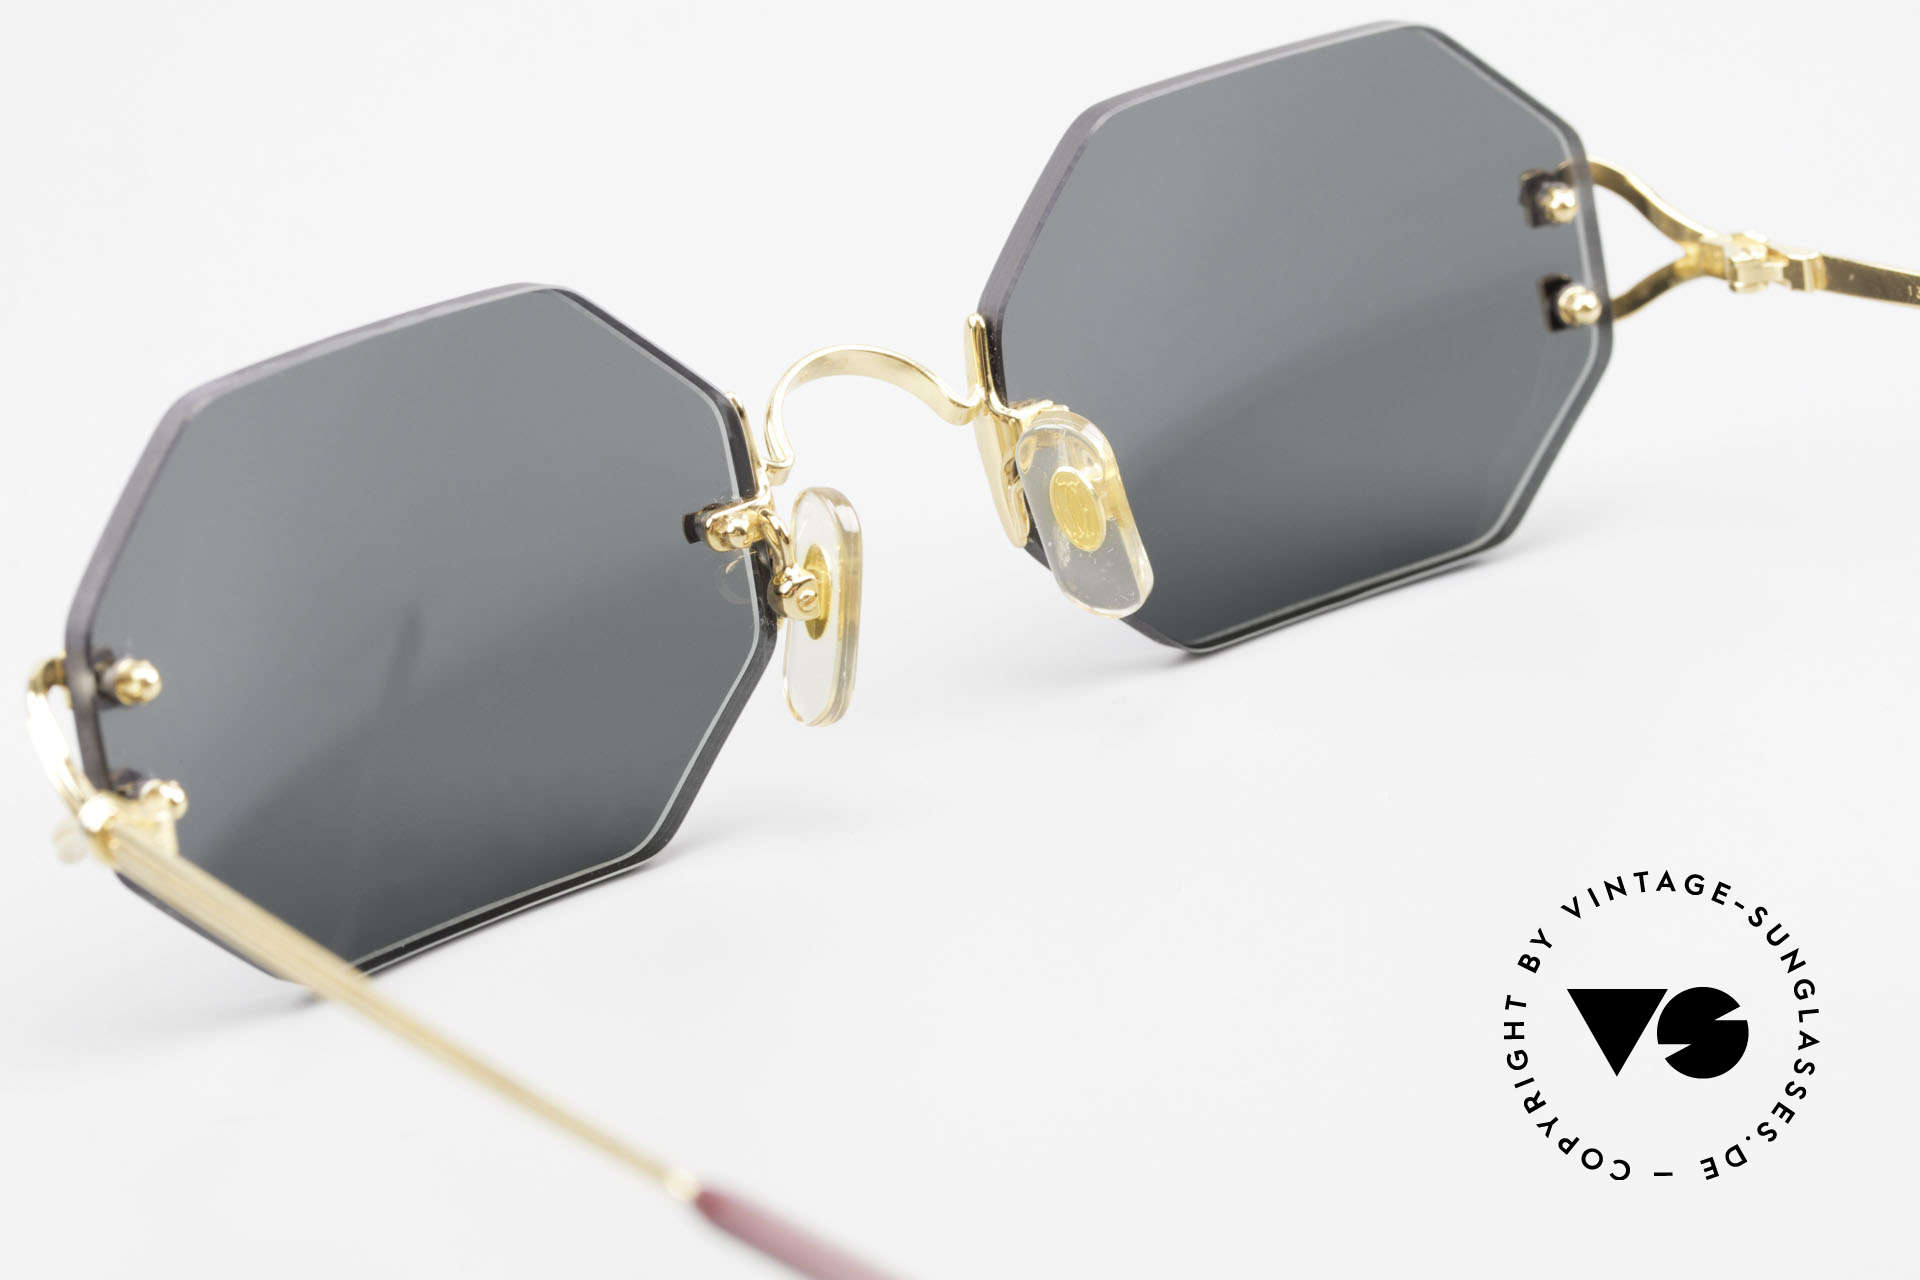 Cartier Rimless Octag Rimless Octagonal Shades - L, with new CR39 UV400 lenses in gray-green G15 color, Made for Men and Women